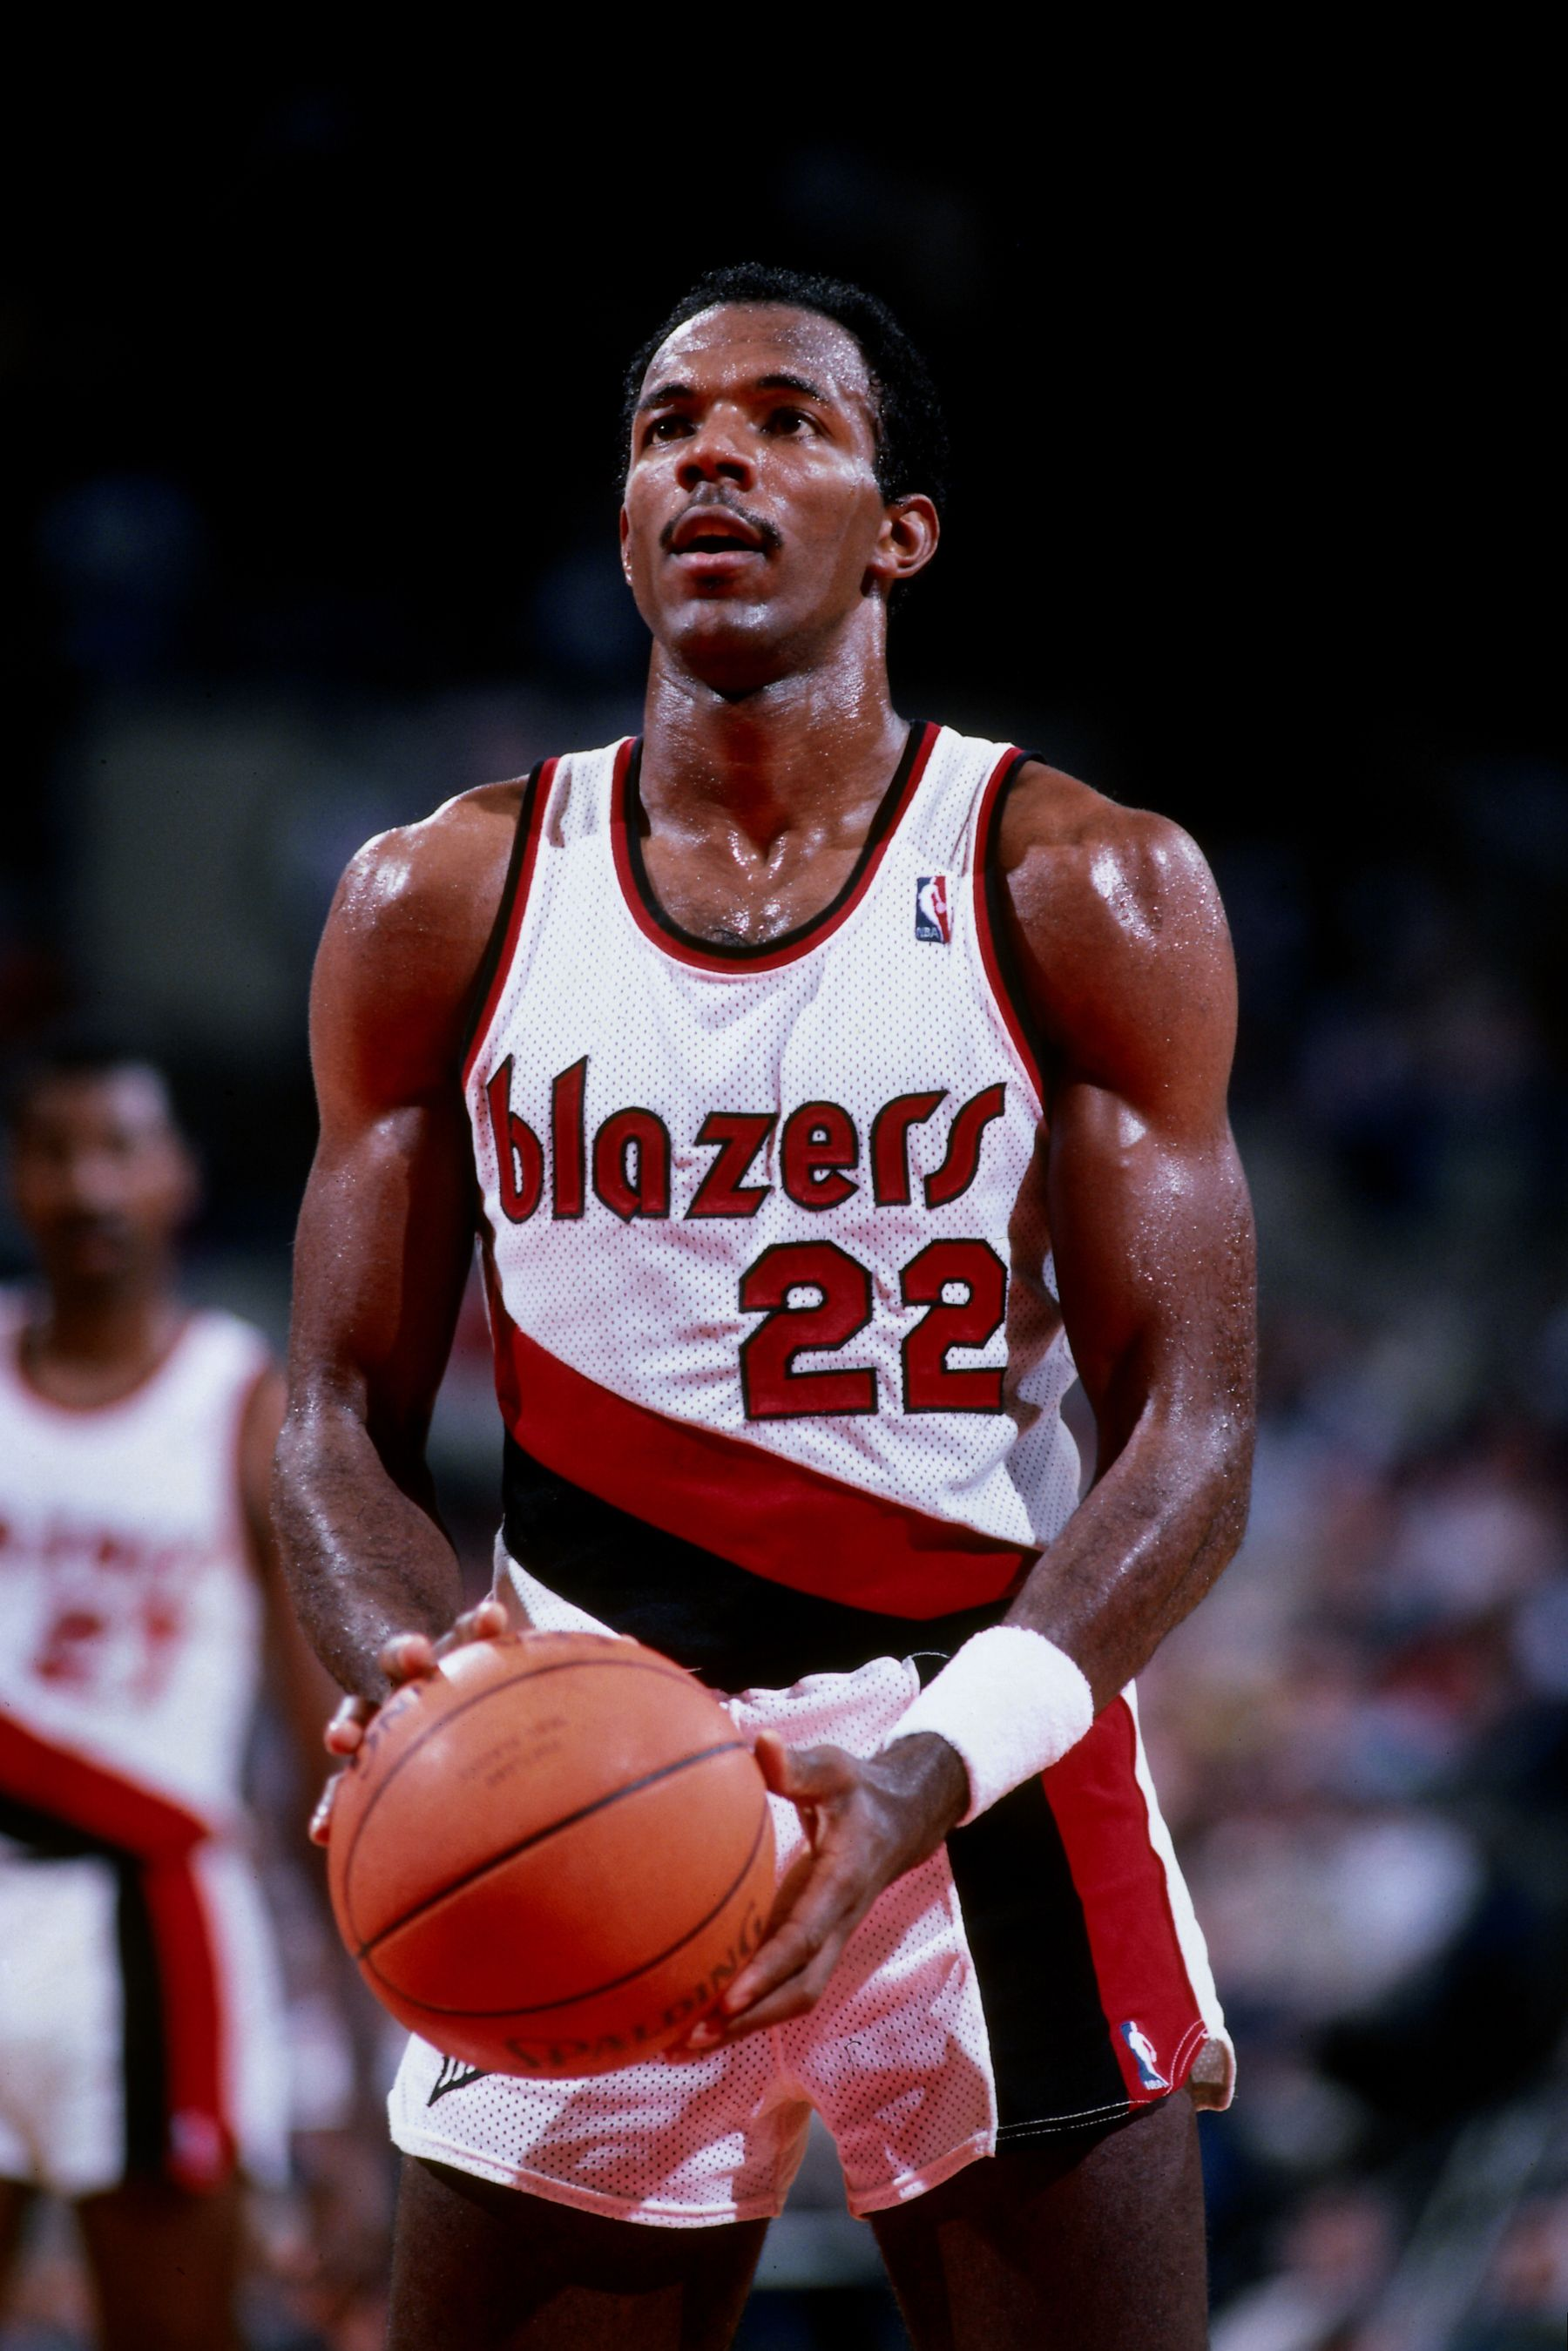 Clyde The Glide Drexler A Ten Time All Star And Member Of The Basketball Hall Of Fame The Nba Named Him One Of Basketball S Shooting Guard Nba Nba Legends